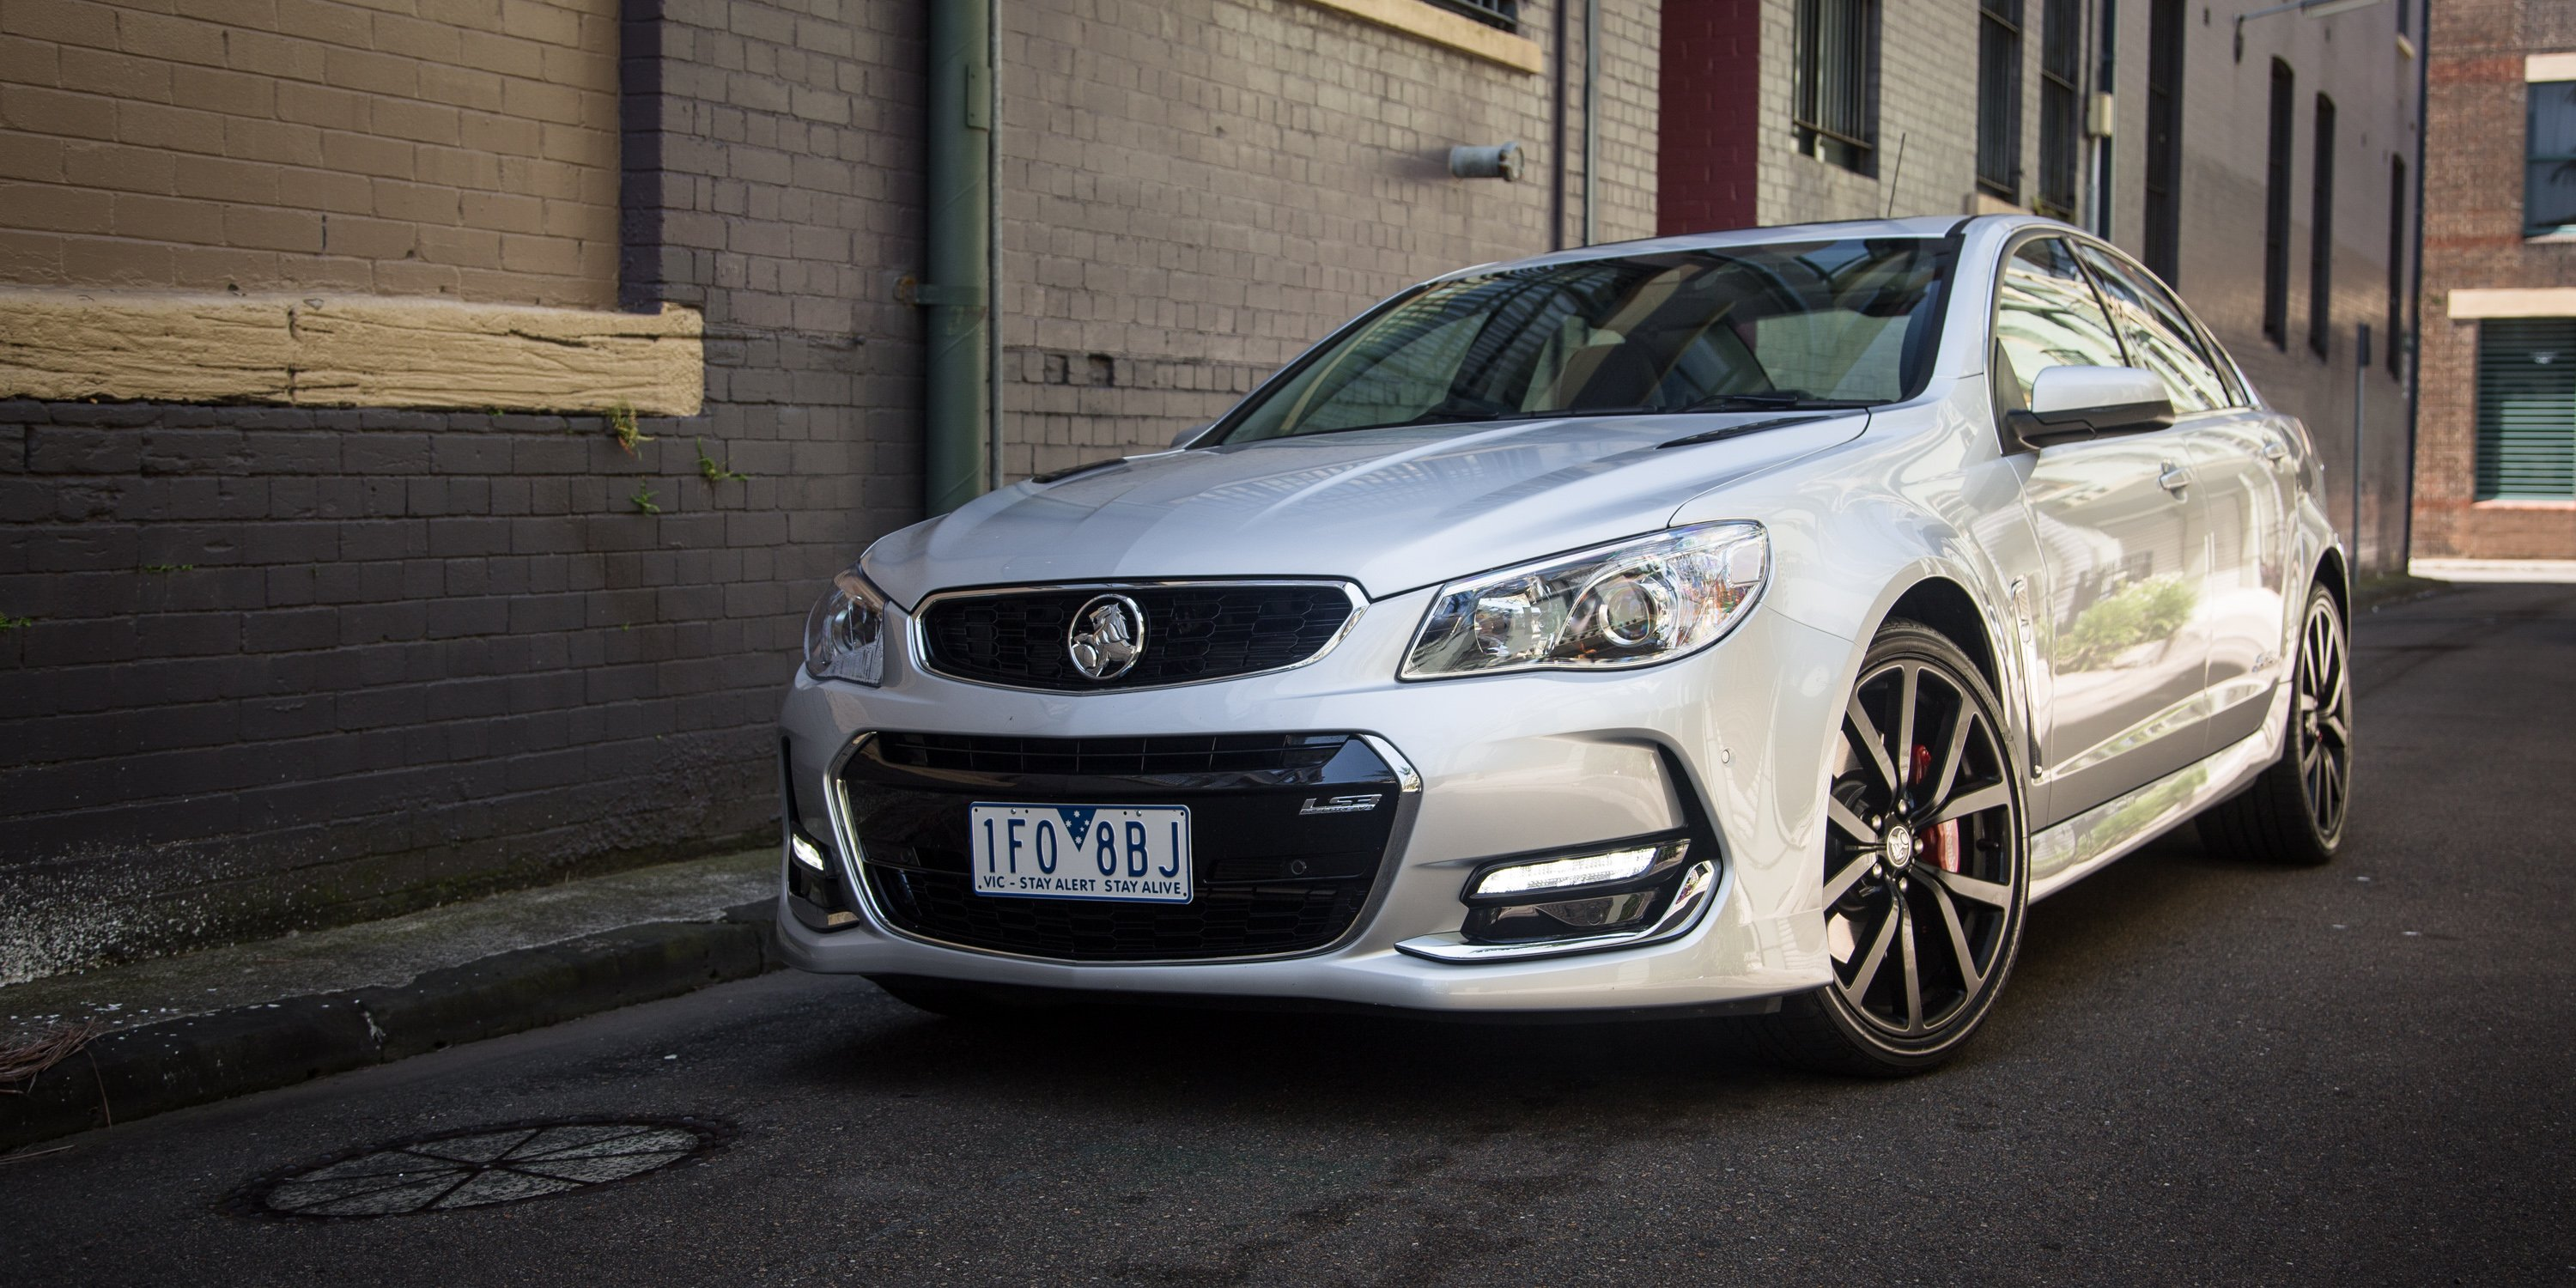 Elegant 2016 Holden Commodore SSV Redline Review Driving The City At Night